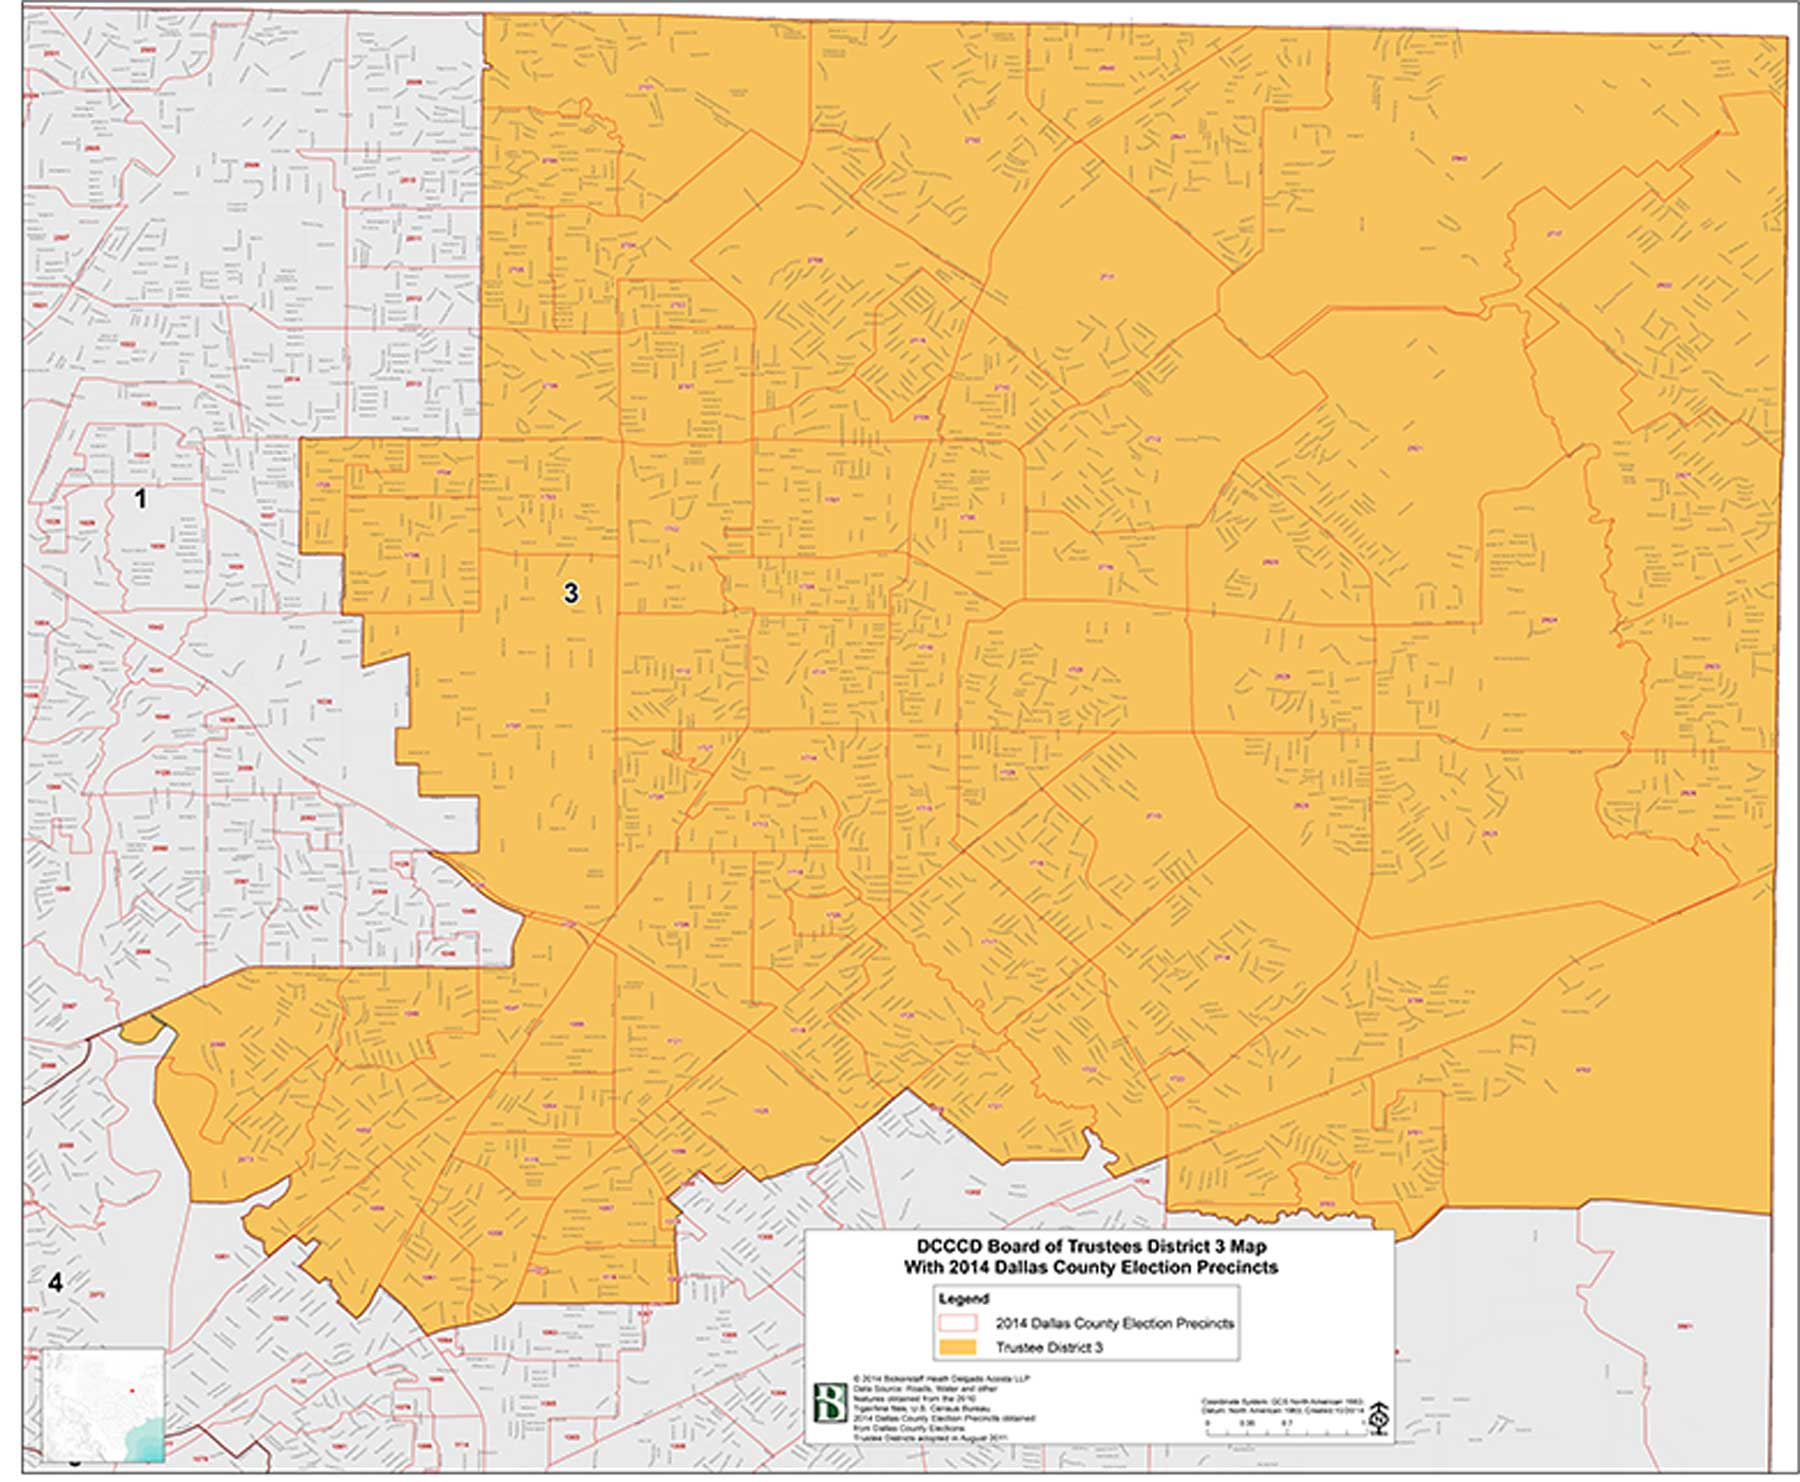 DCCCD Board of Trustees District 3 Map